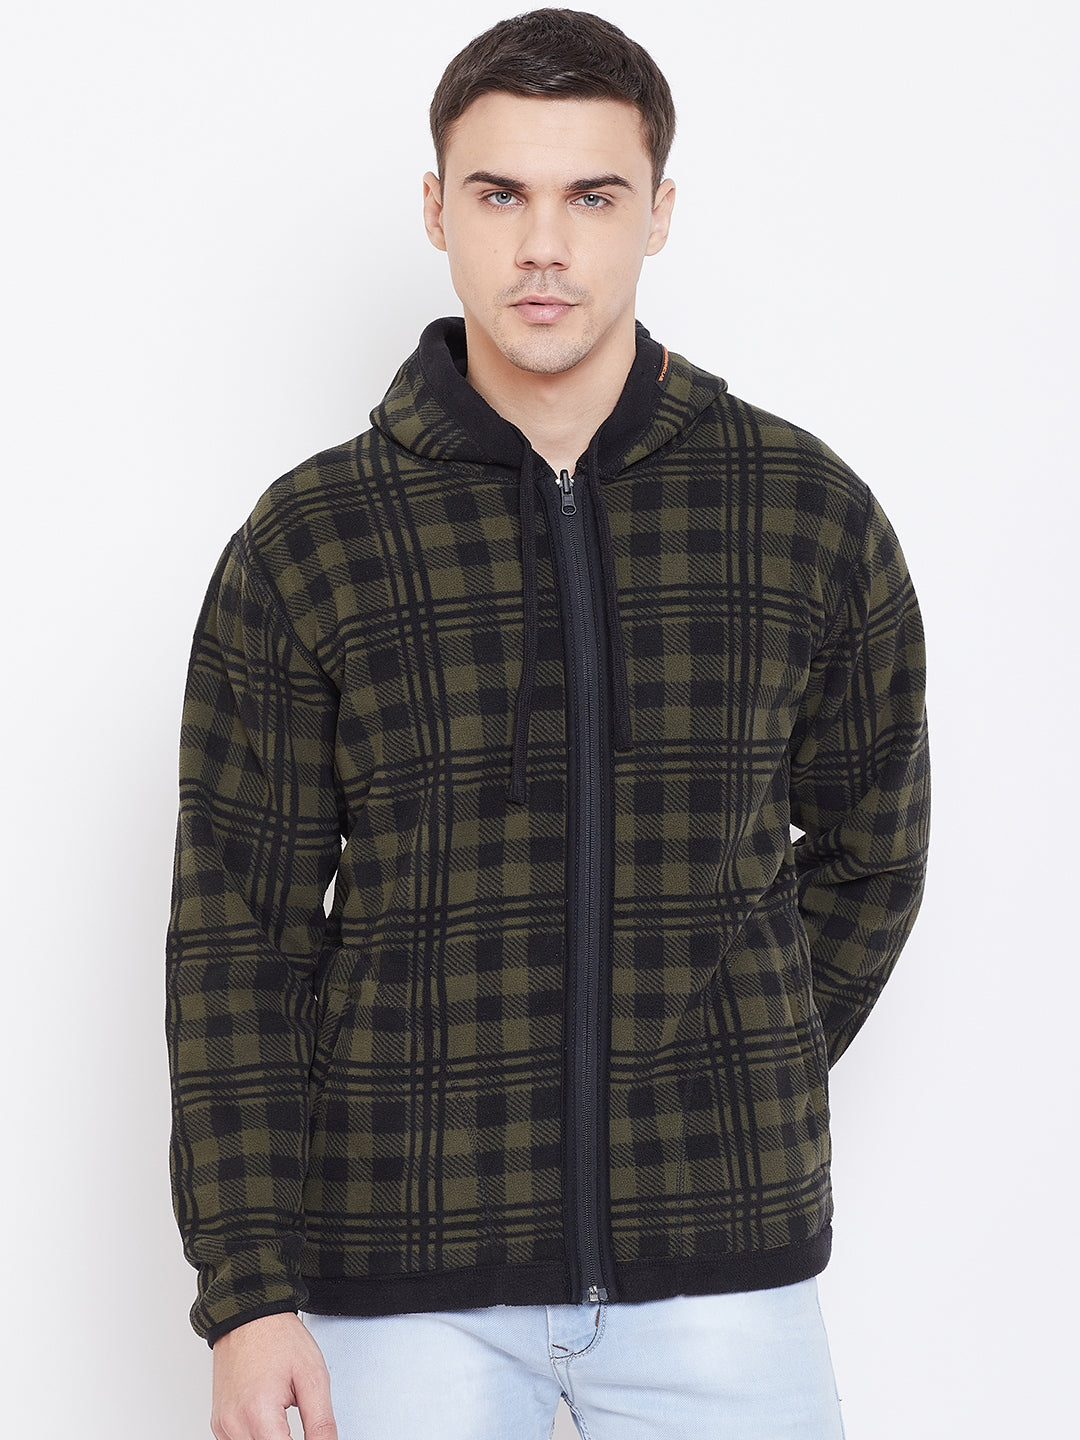 Octave Apparels Olive green jacket for Men